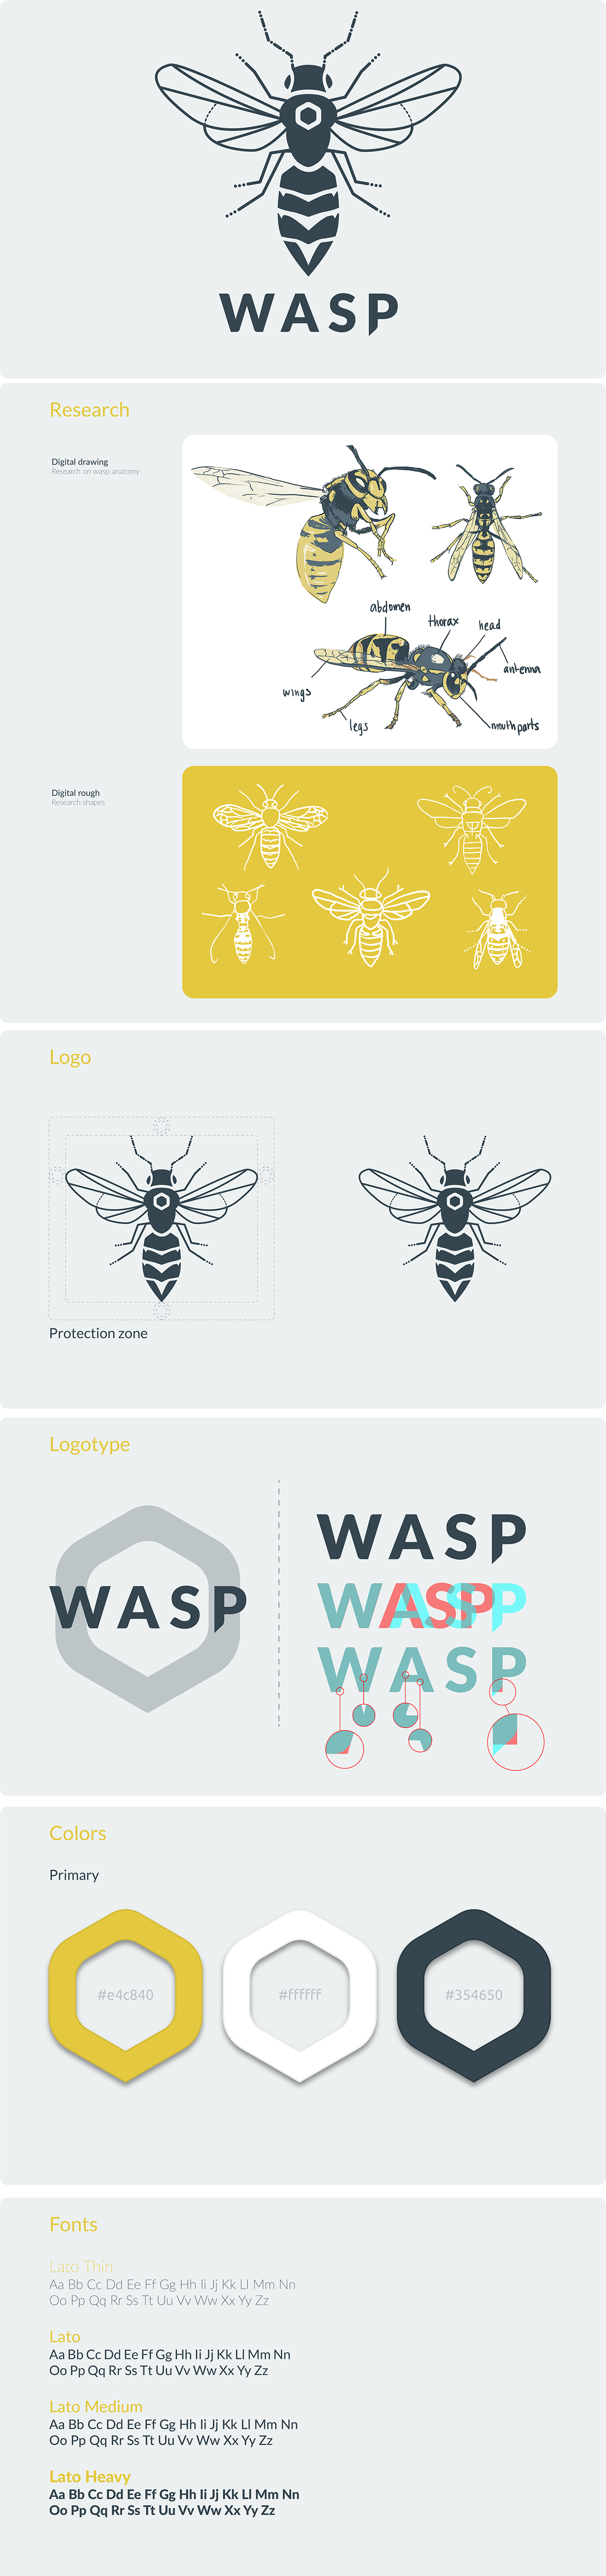 brand identity graphique graphic design wasp Logotype insect